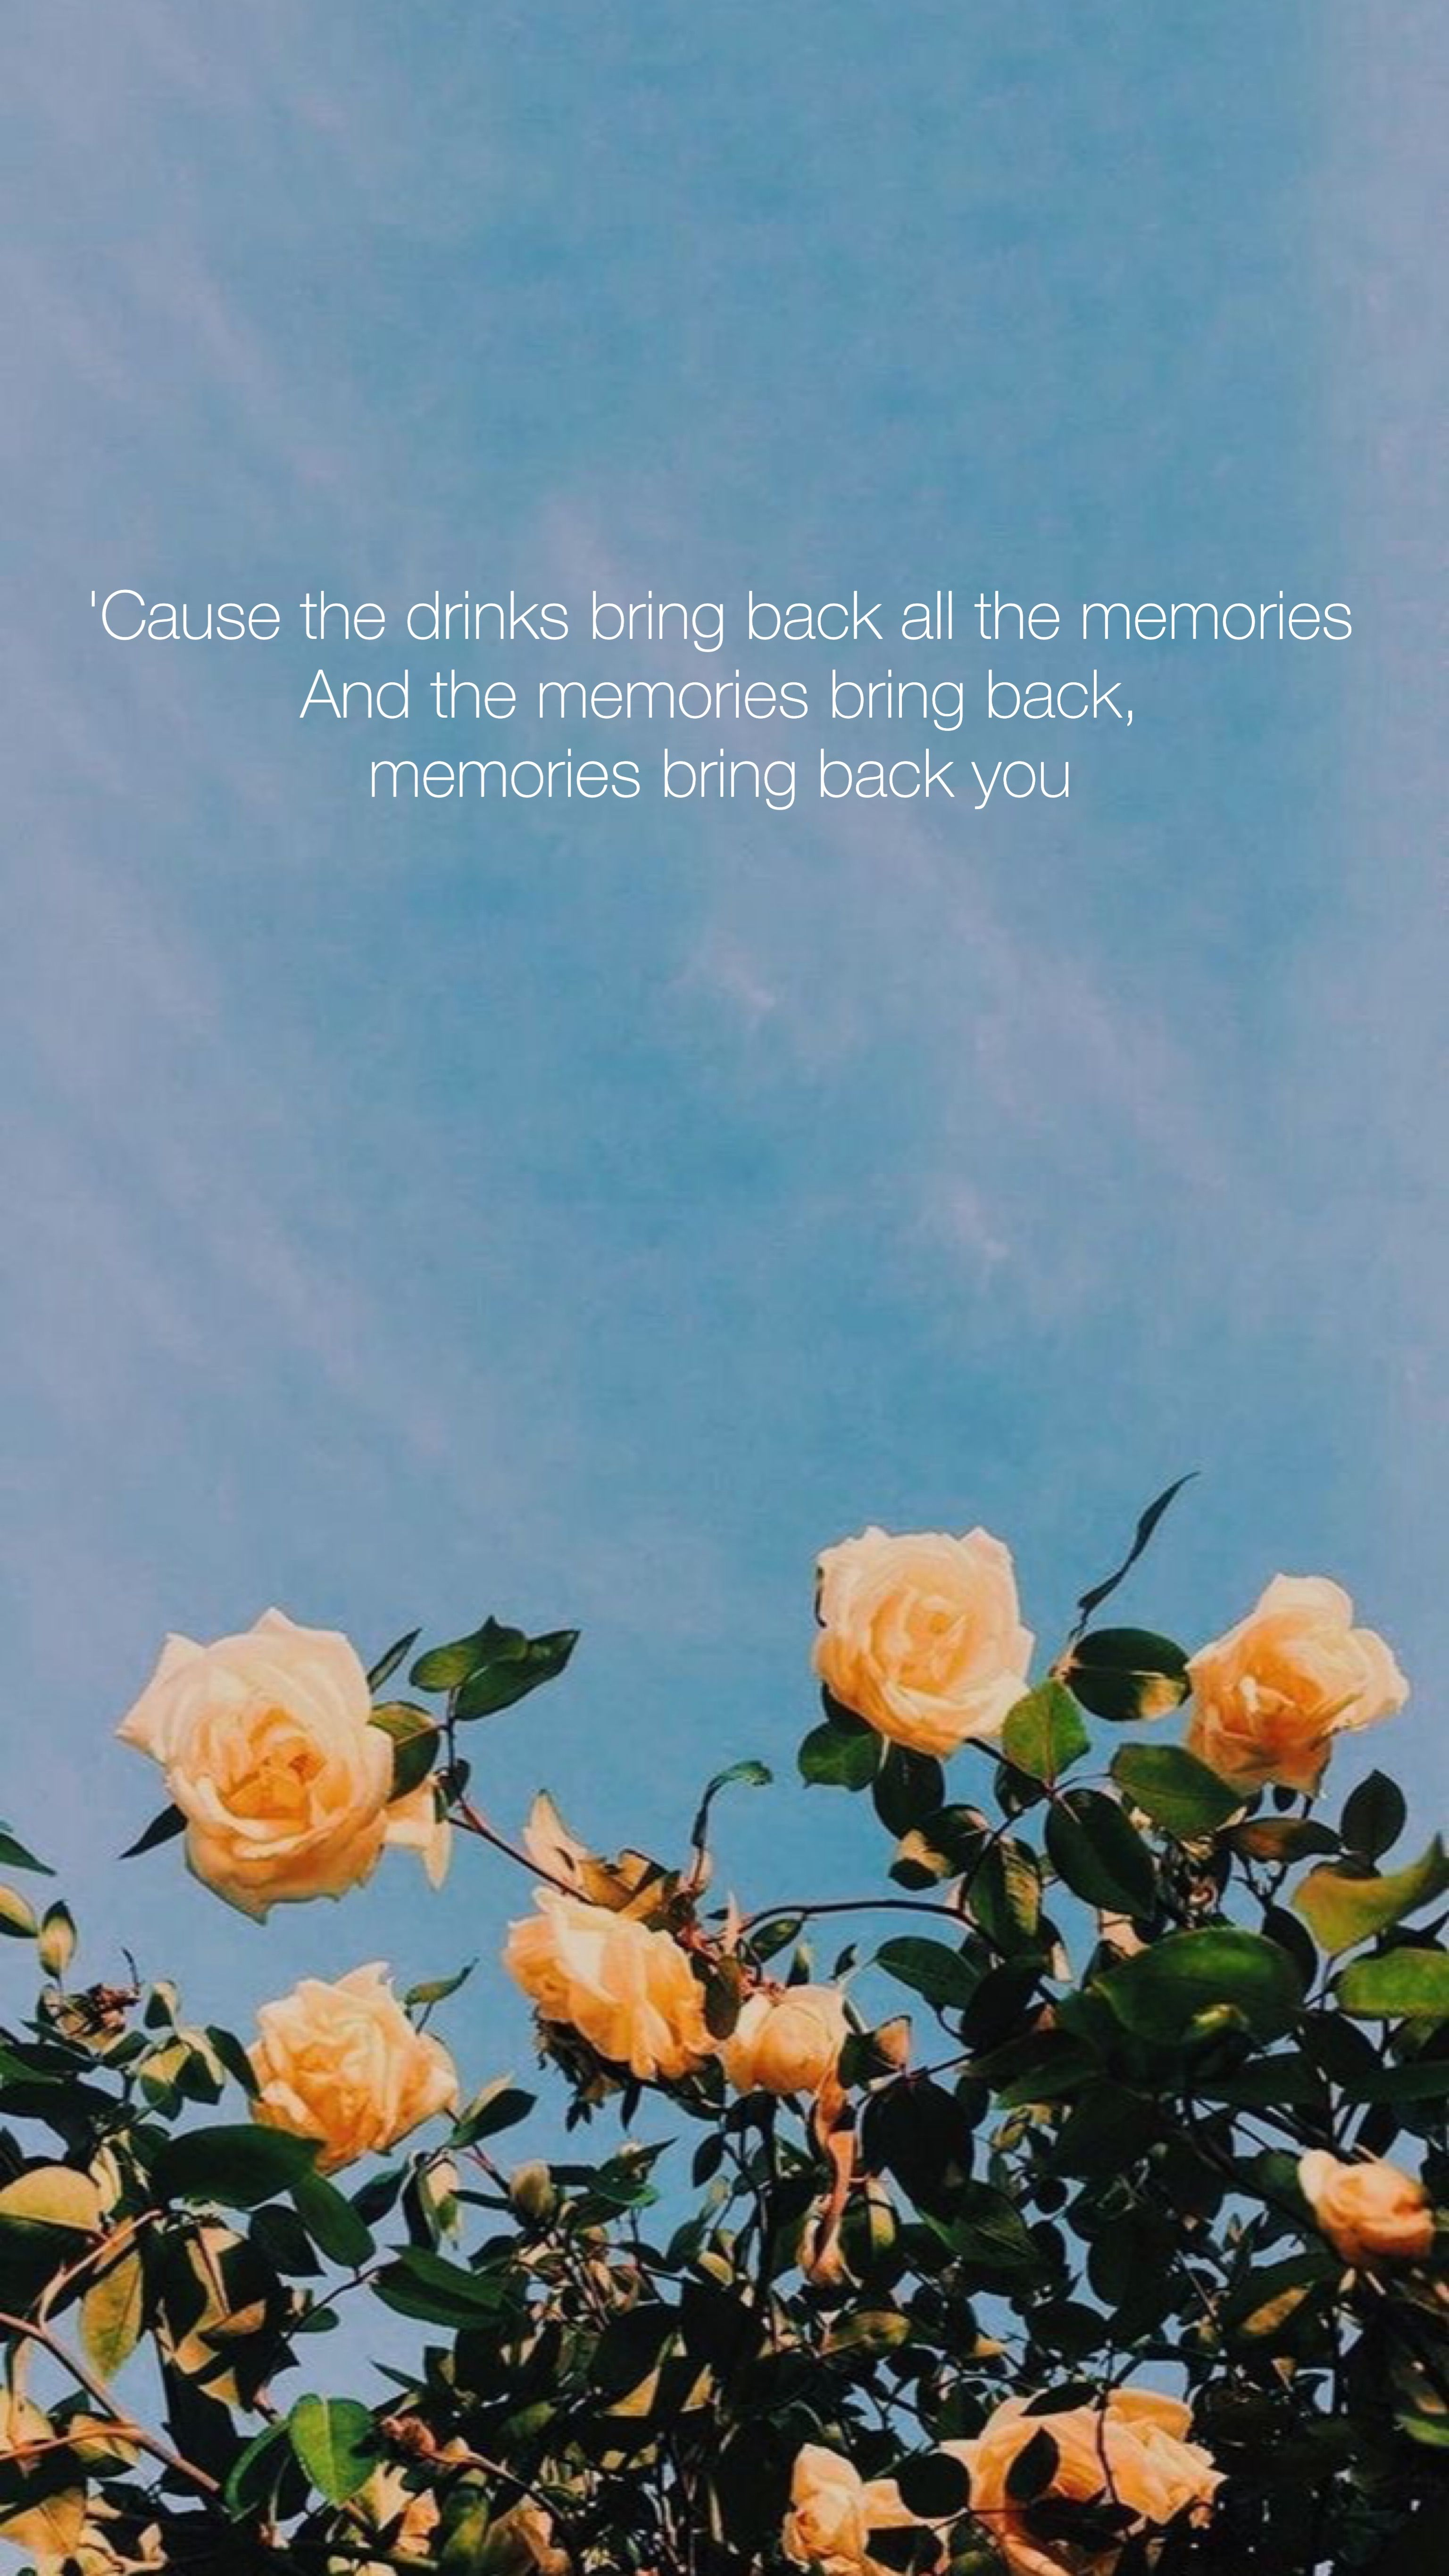 Maroon 5 Memories Maroon 5 Lyrics Maroon 5 Maroon 5 Quotes